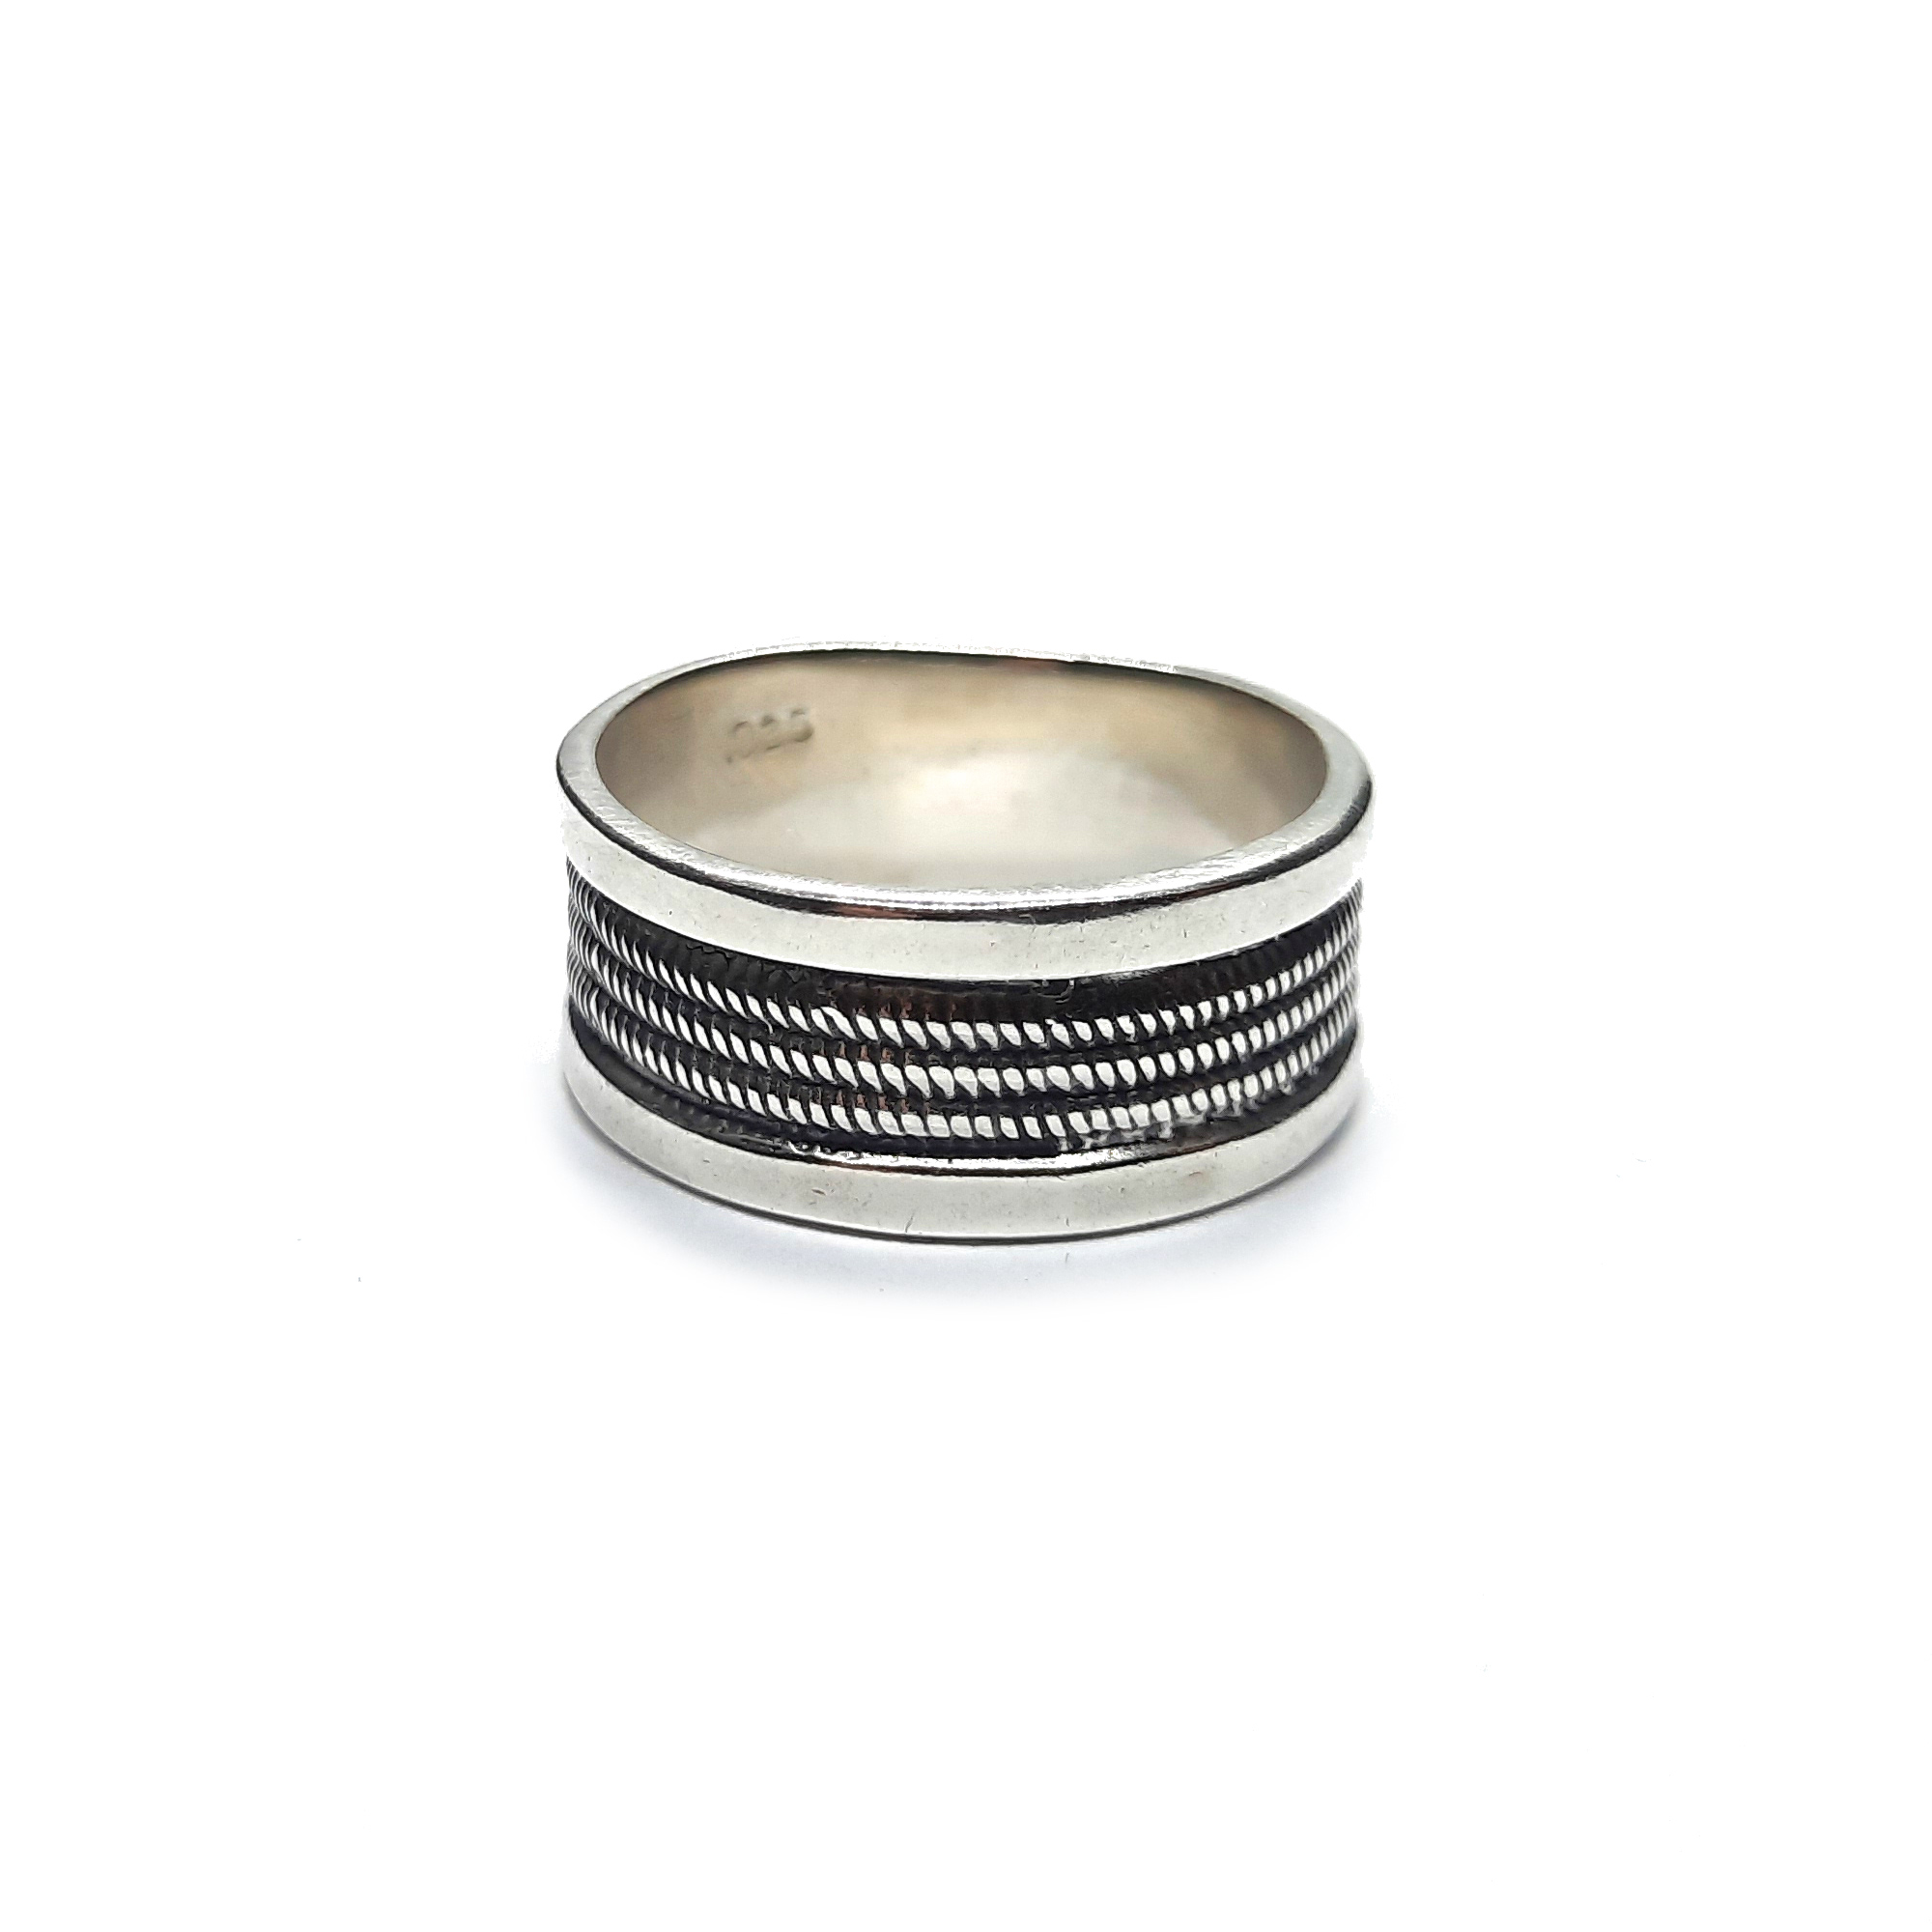 Silver ring - R002235